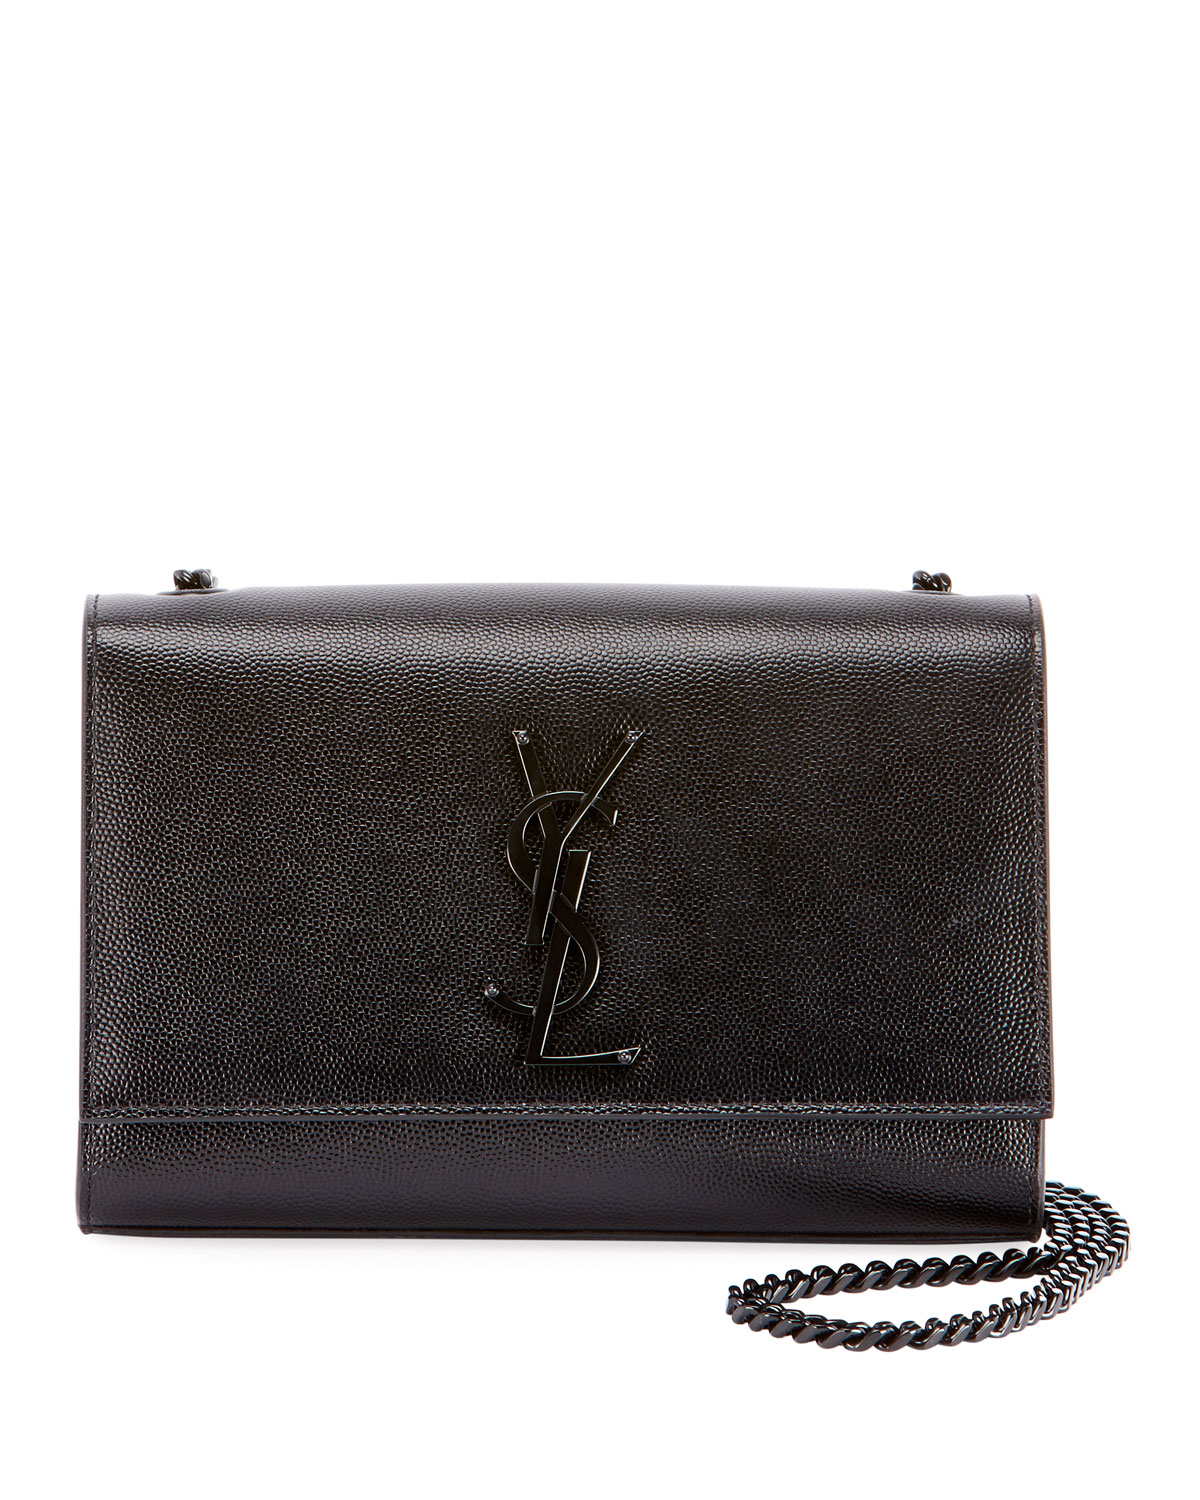 Saint Laurent Kate Monogram Ysl Small Chain Shoulder Bag